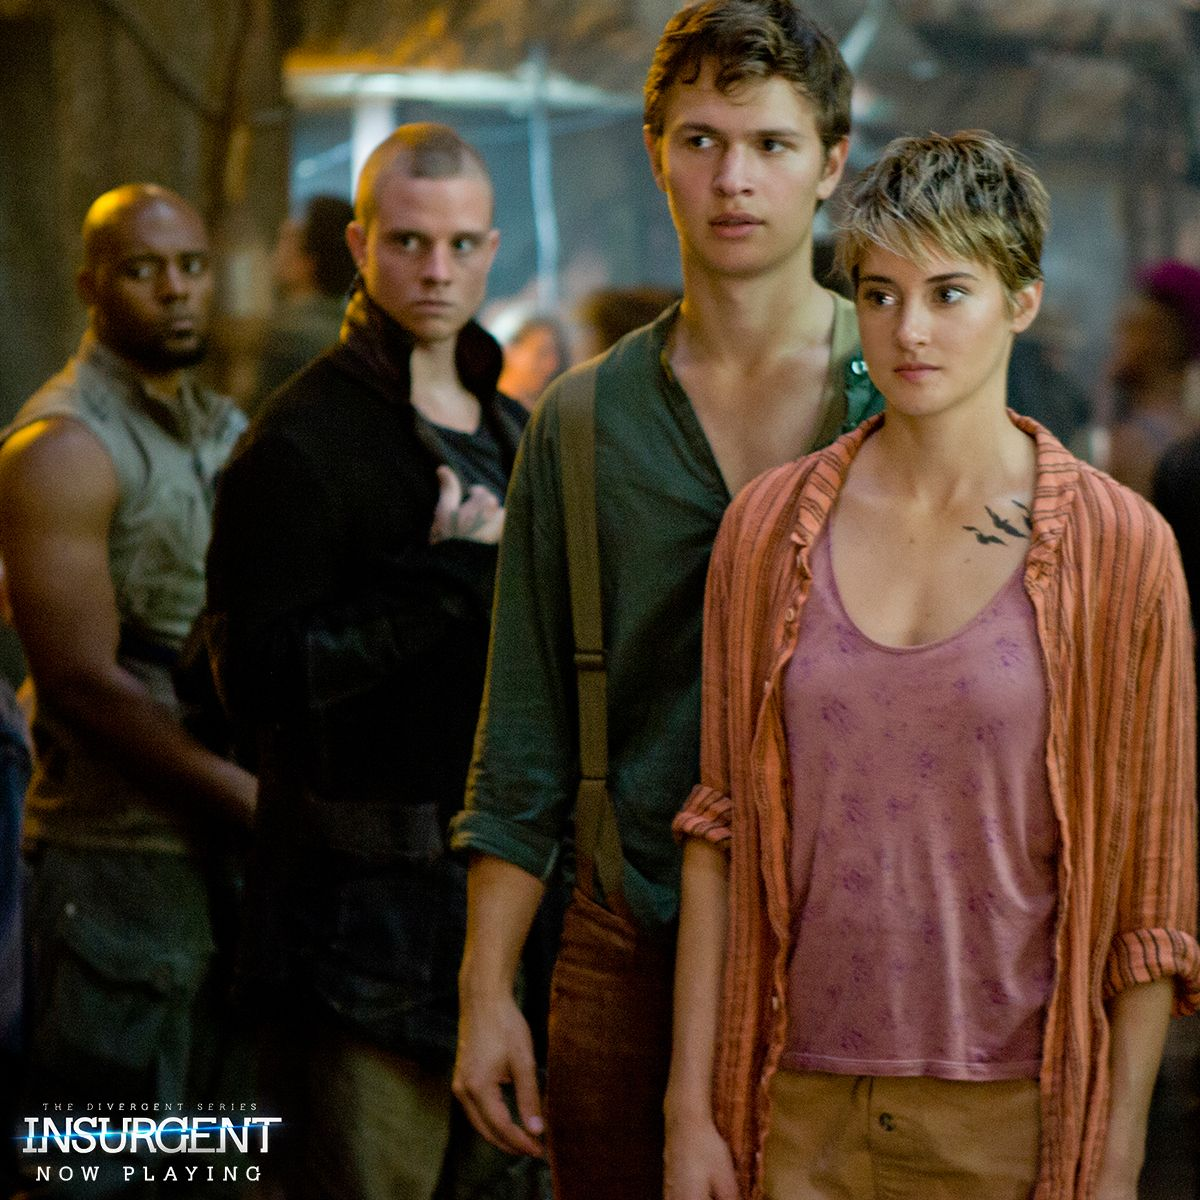 Is joining forces the right answer? #Insurgent